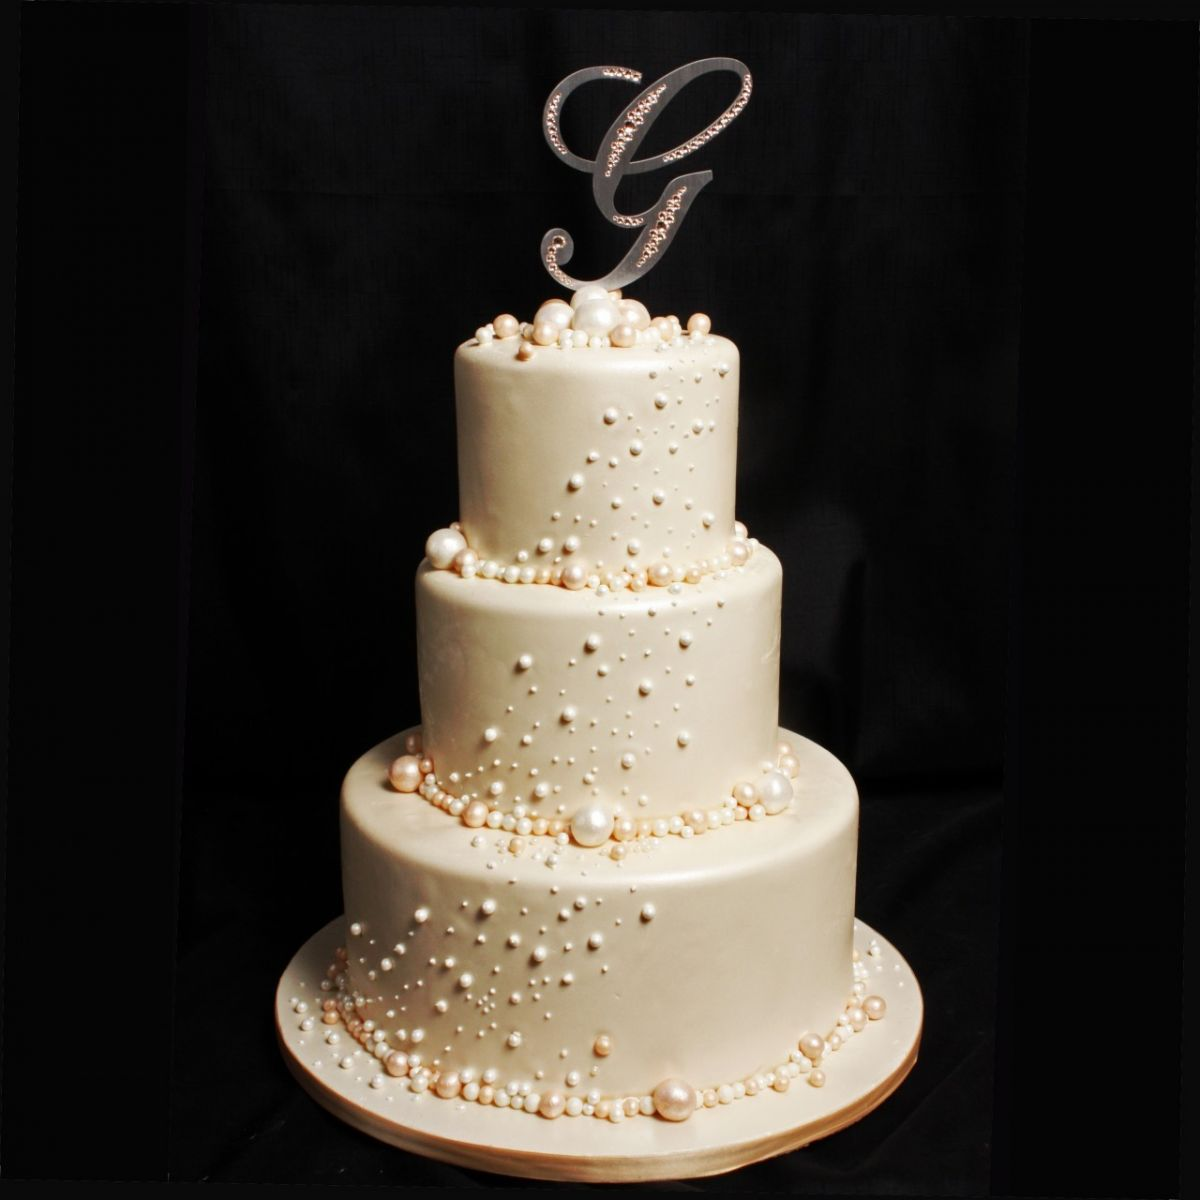 The Extreme Detail Of Hundreds Pearls Is Perfectly Offset With Neutral Color This Elegant Wedding Cake